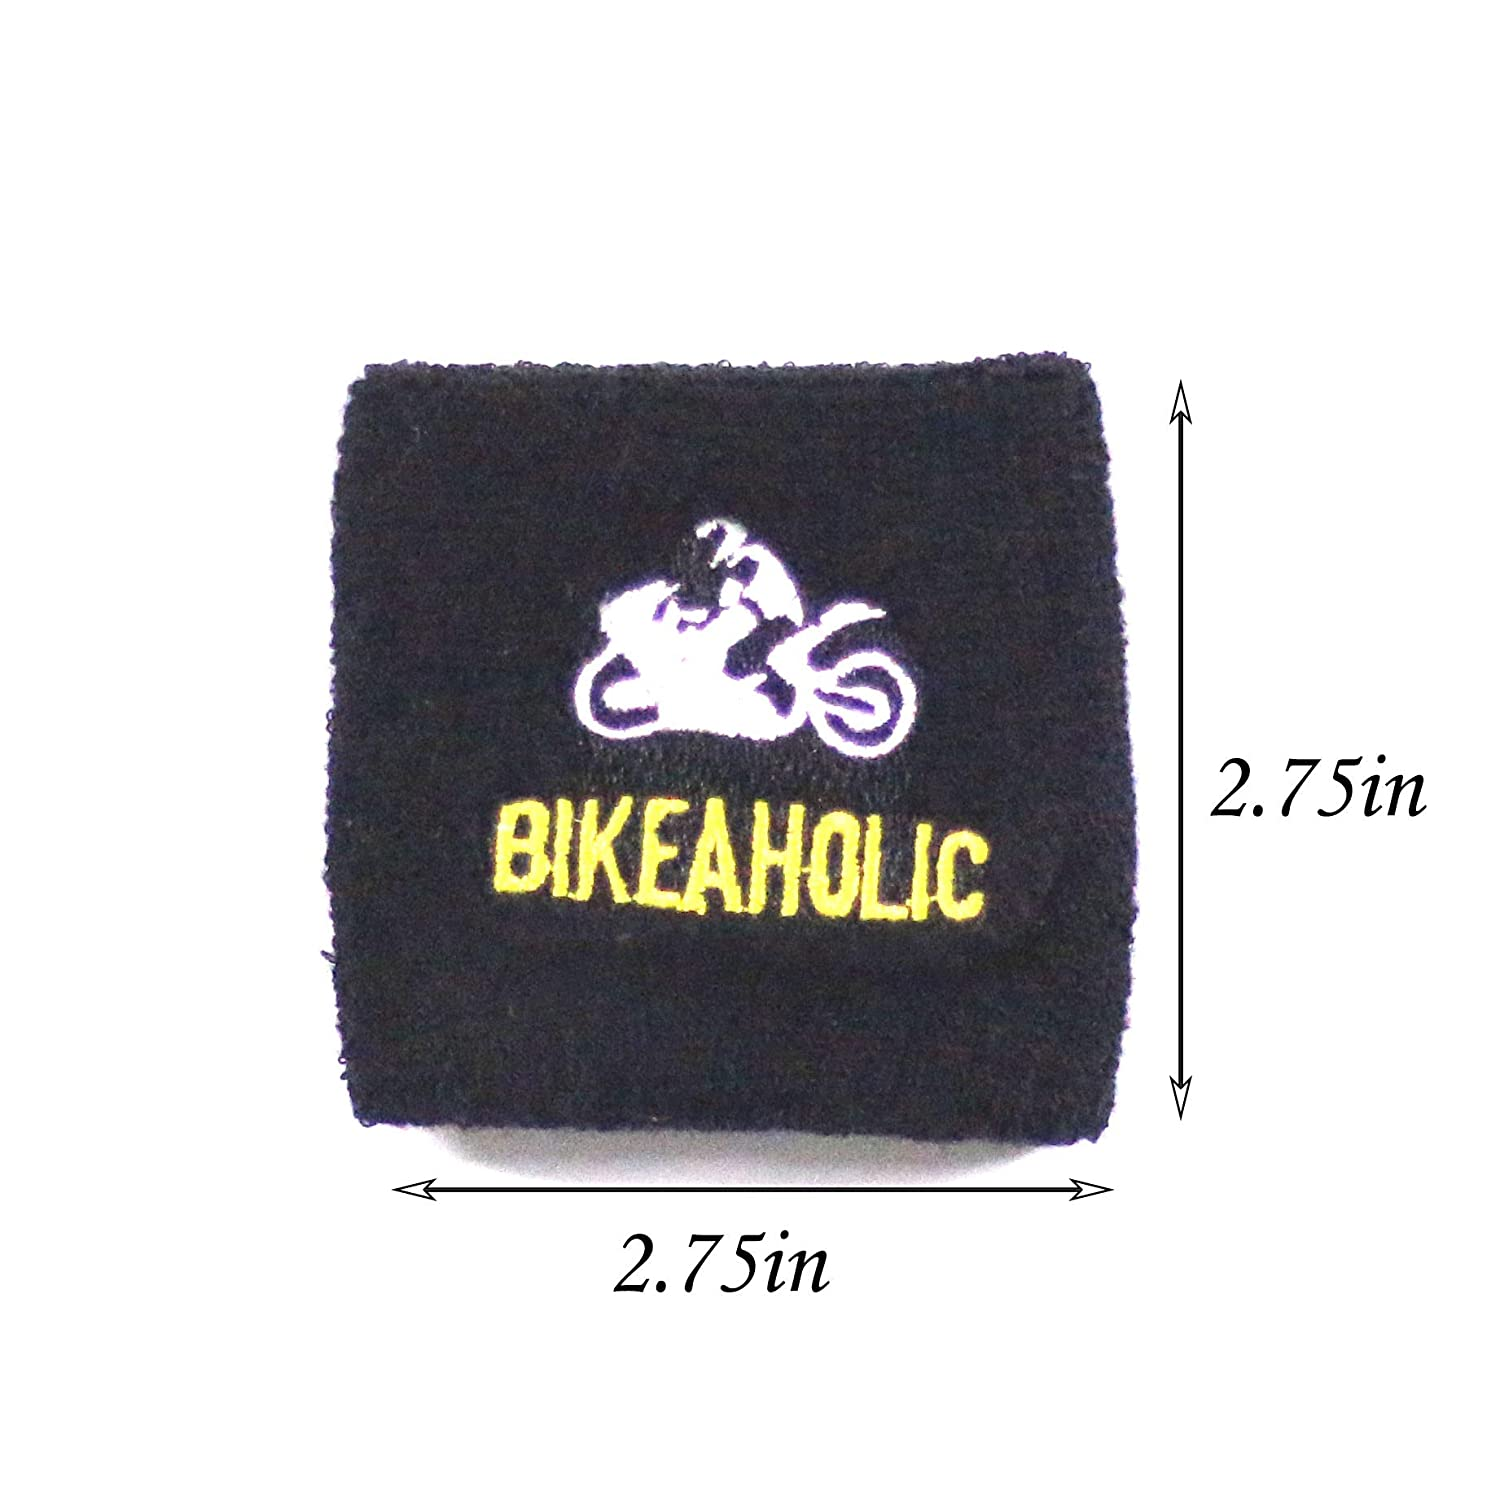 Brake Fluid Reservoir Cover Sock for Motorcycles Sporbikes and Gifts by Moto Loot Moves The Soul